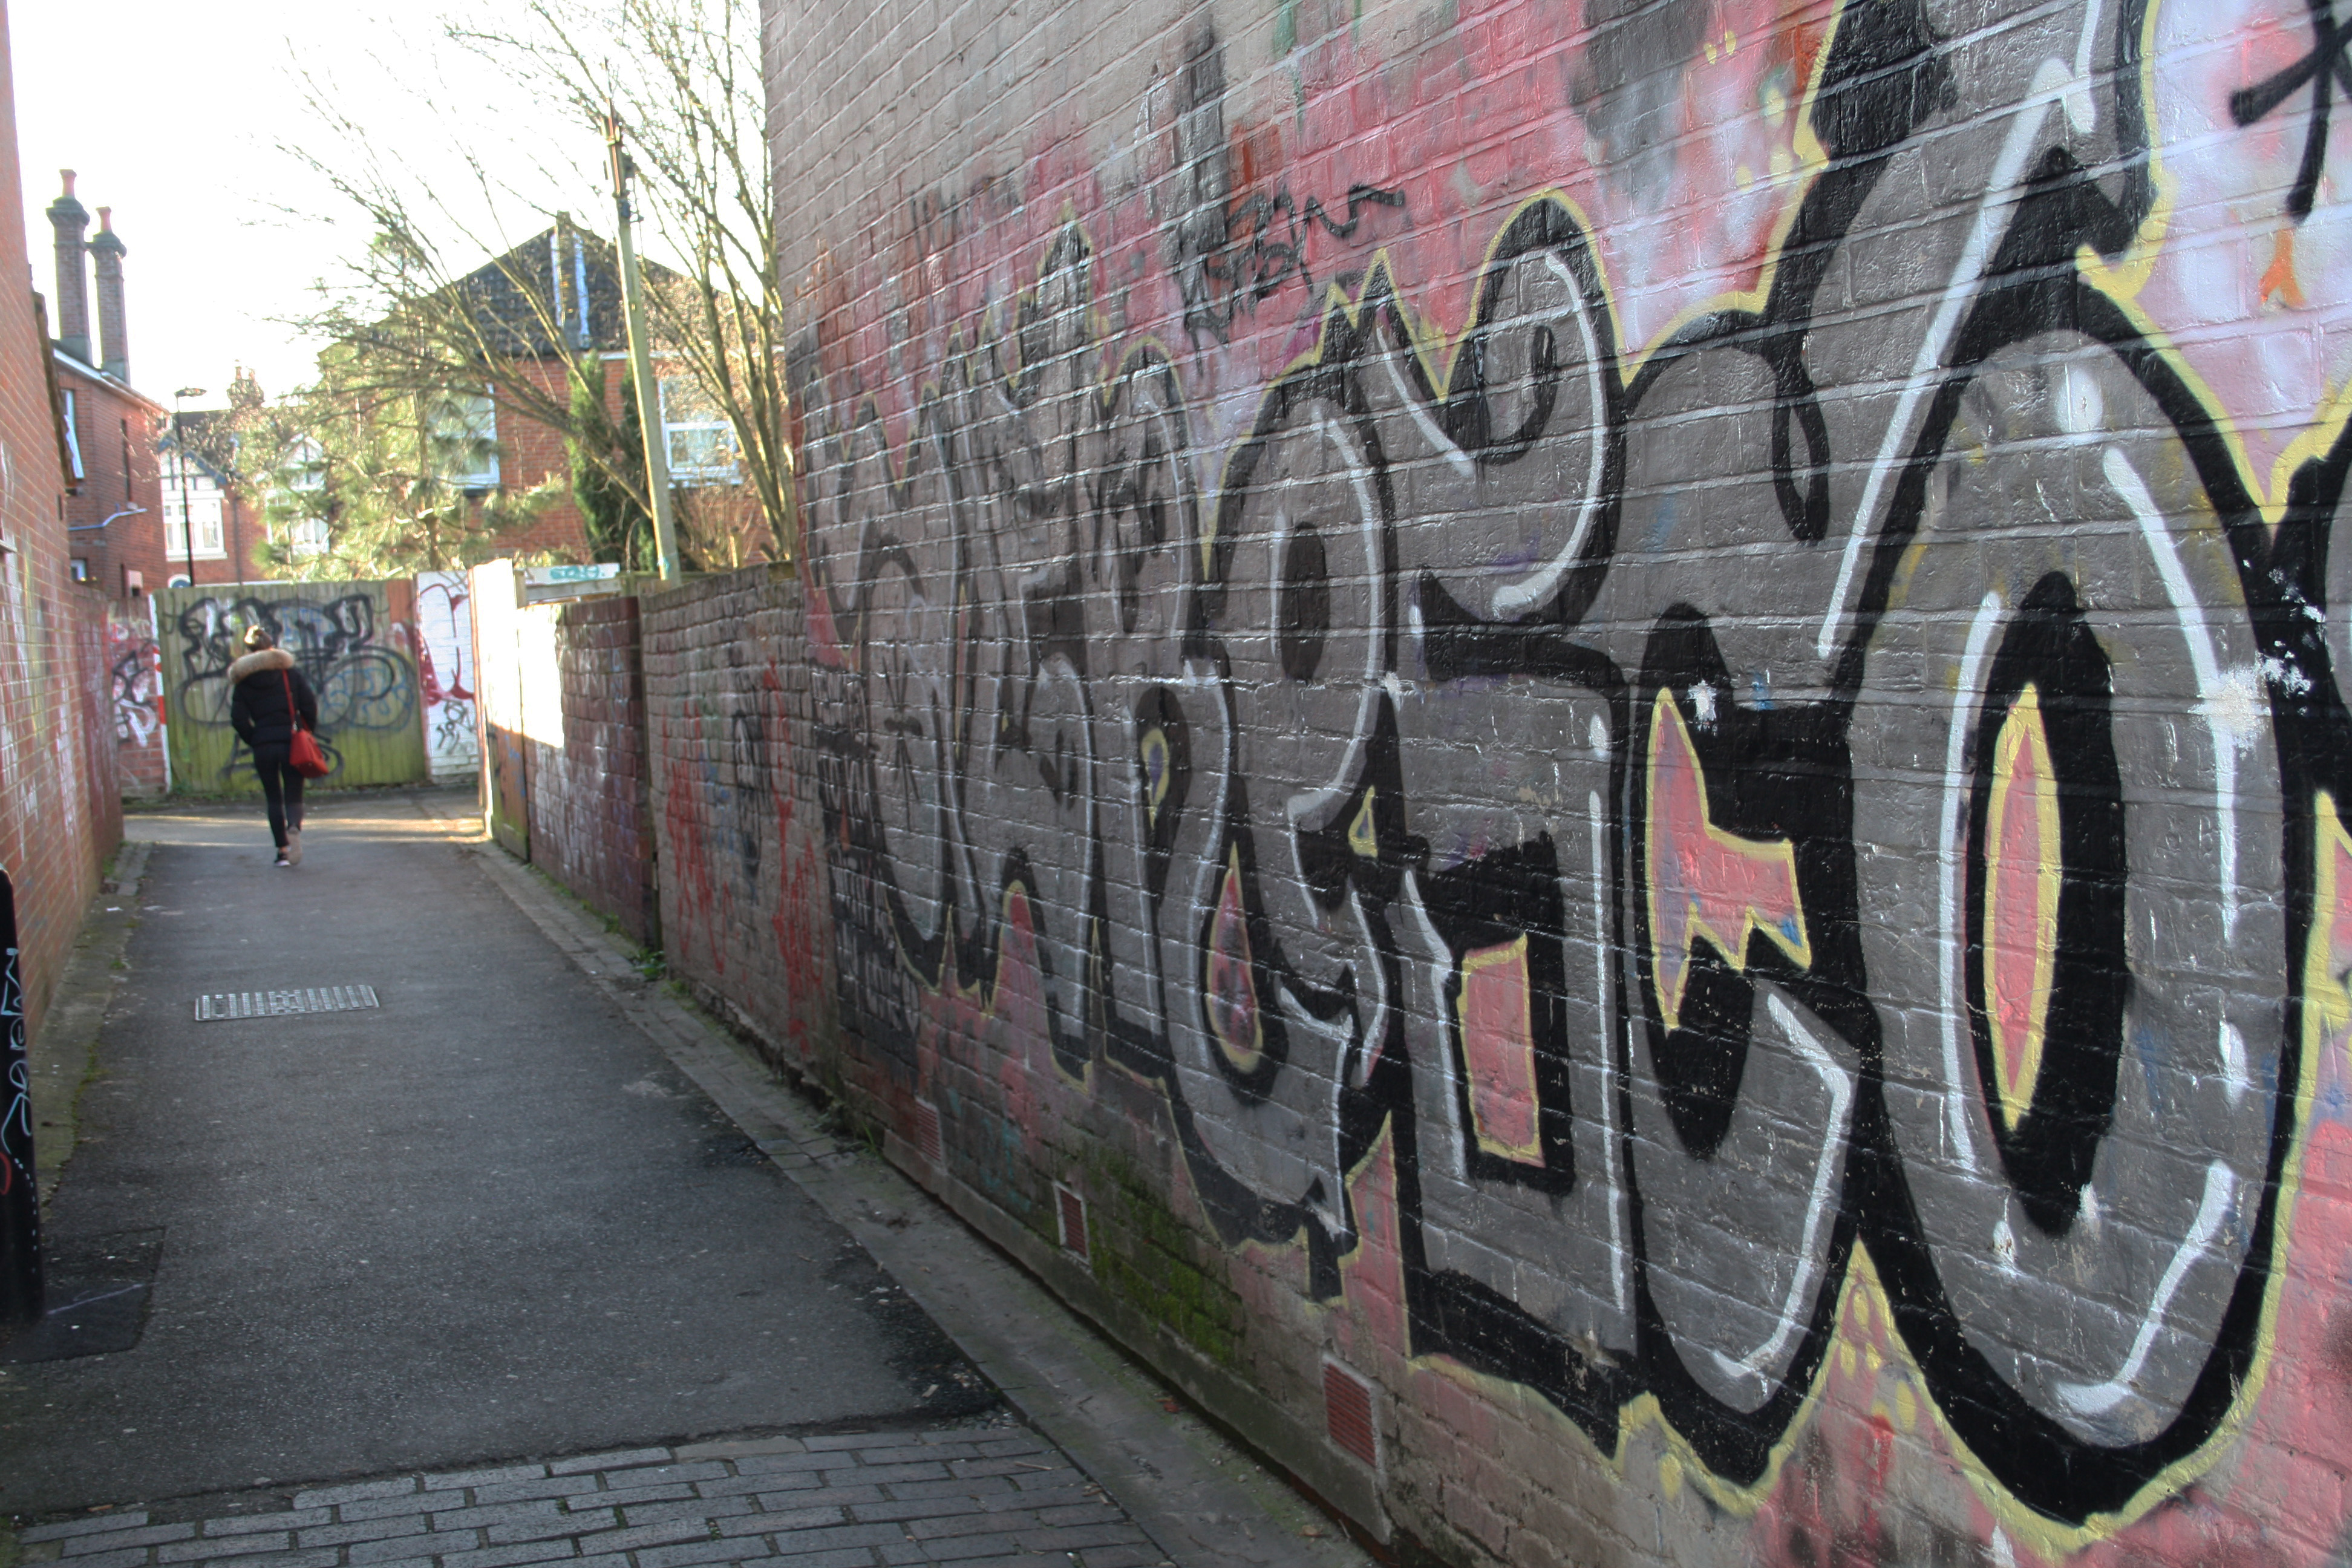 Crime is on the rise in Southampton